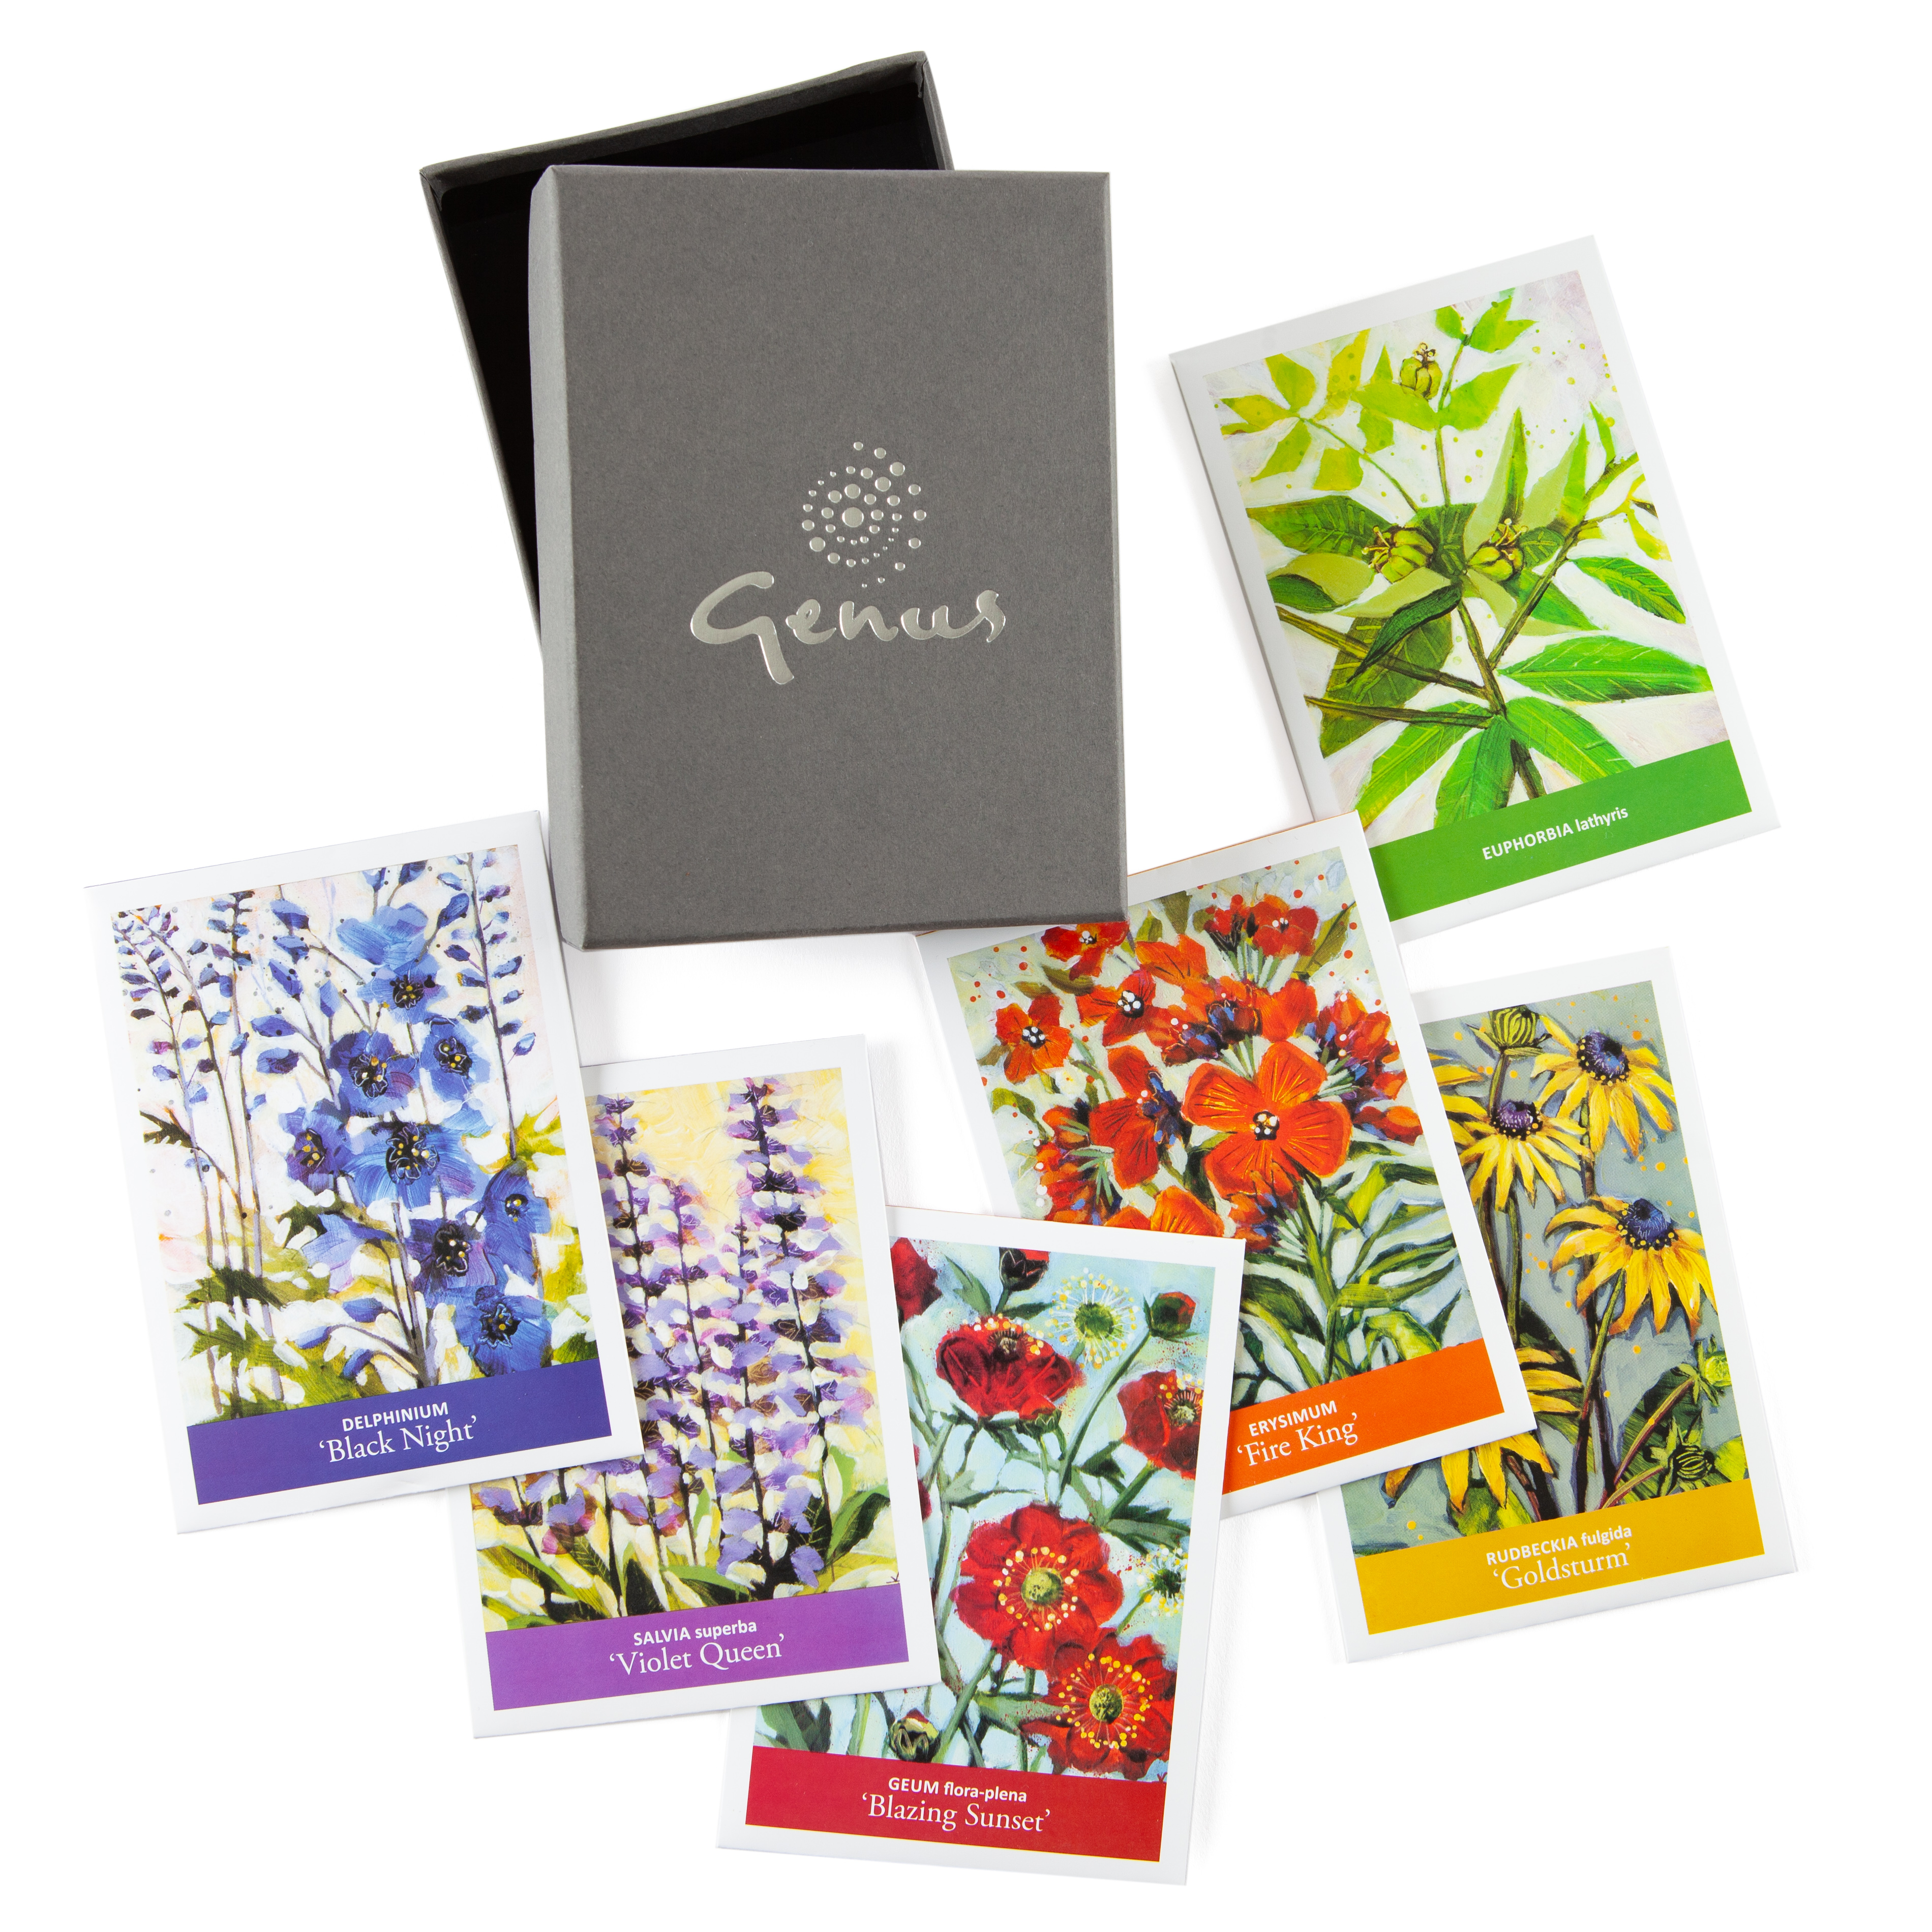 Christmas gifts from Genus Gardenwear